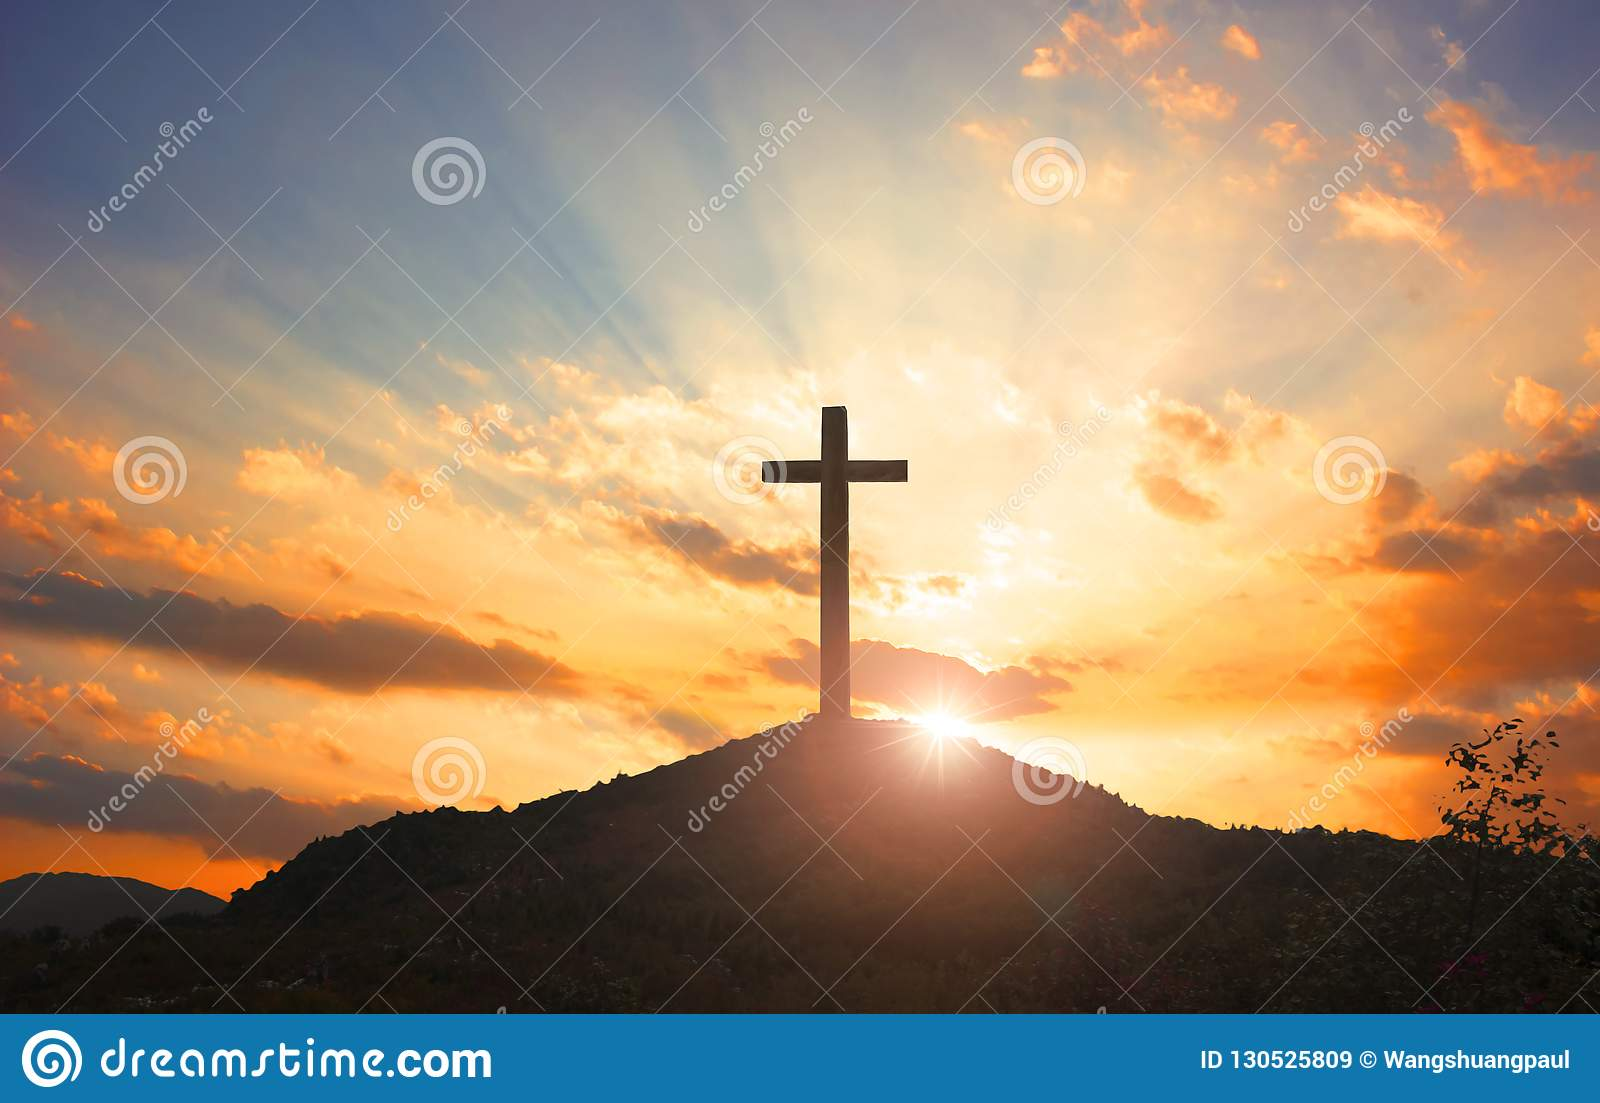 Christmas Concept: Crucifixion Of Jesus Christ Cross At